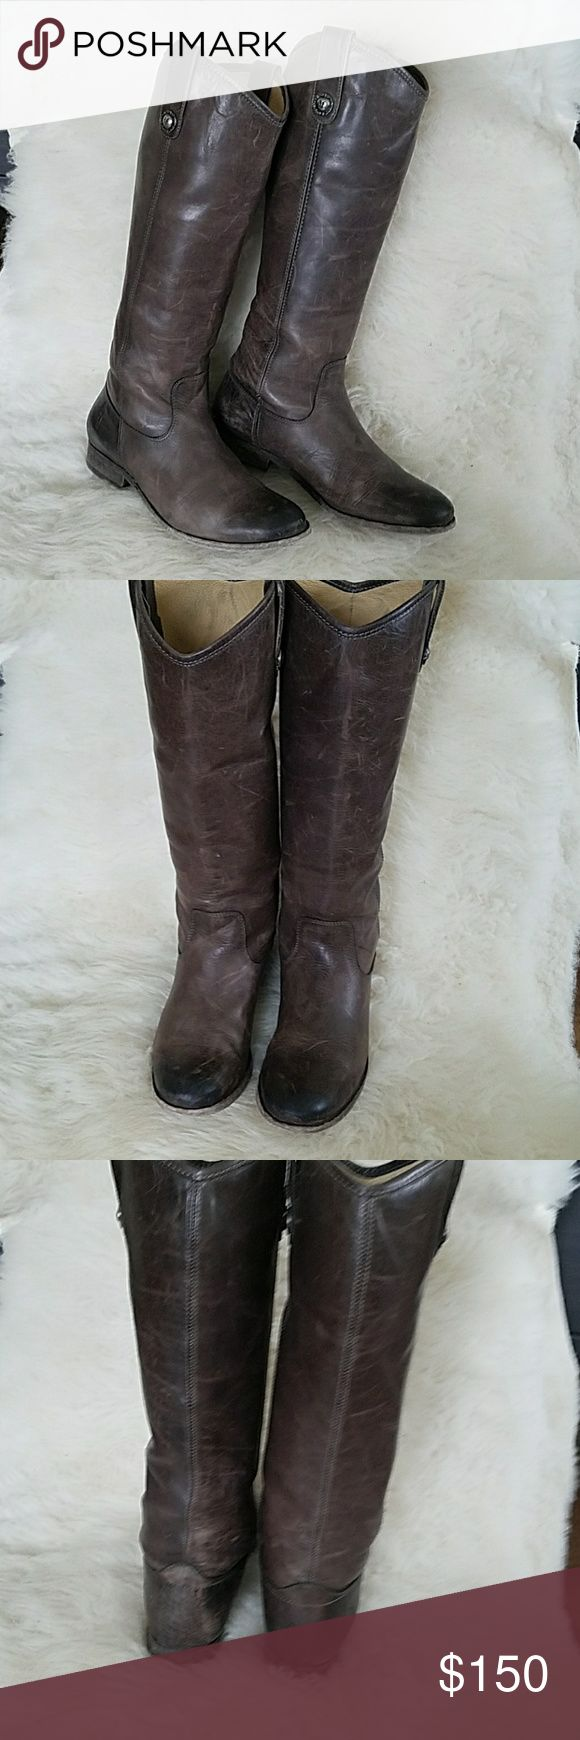 Frye Melissa boots Gorgeous boots. Great used condition. I have bag in same color for sale. Frye Shoes Winter & Rain Boots